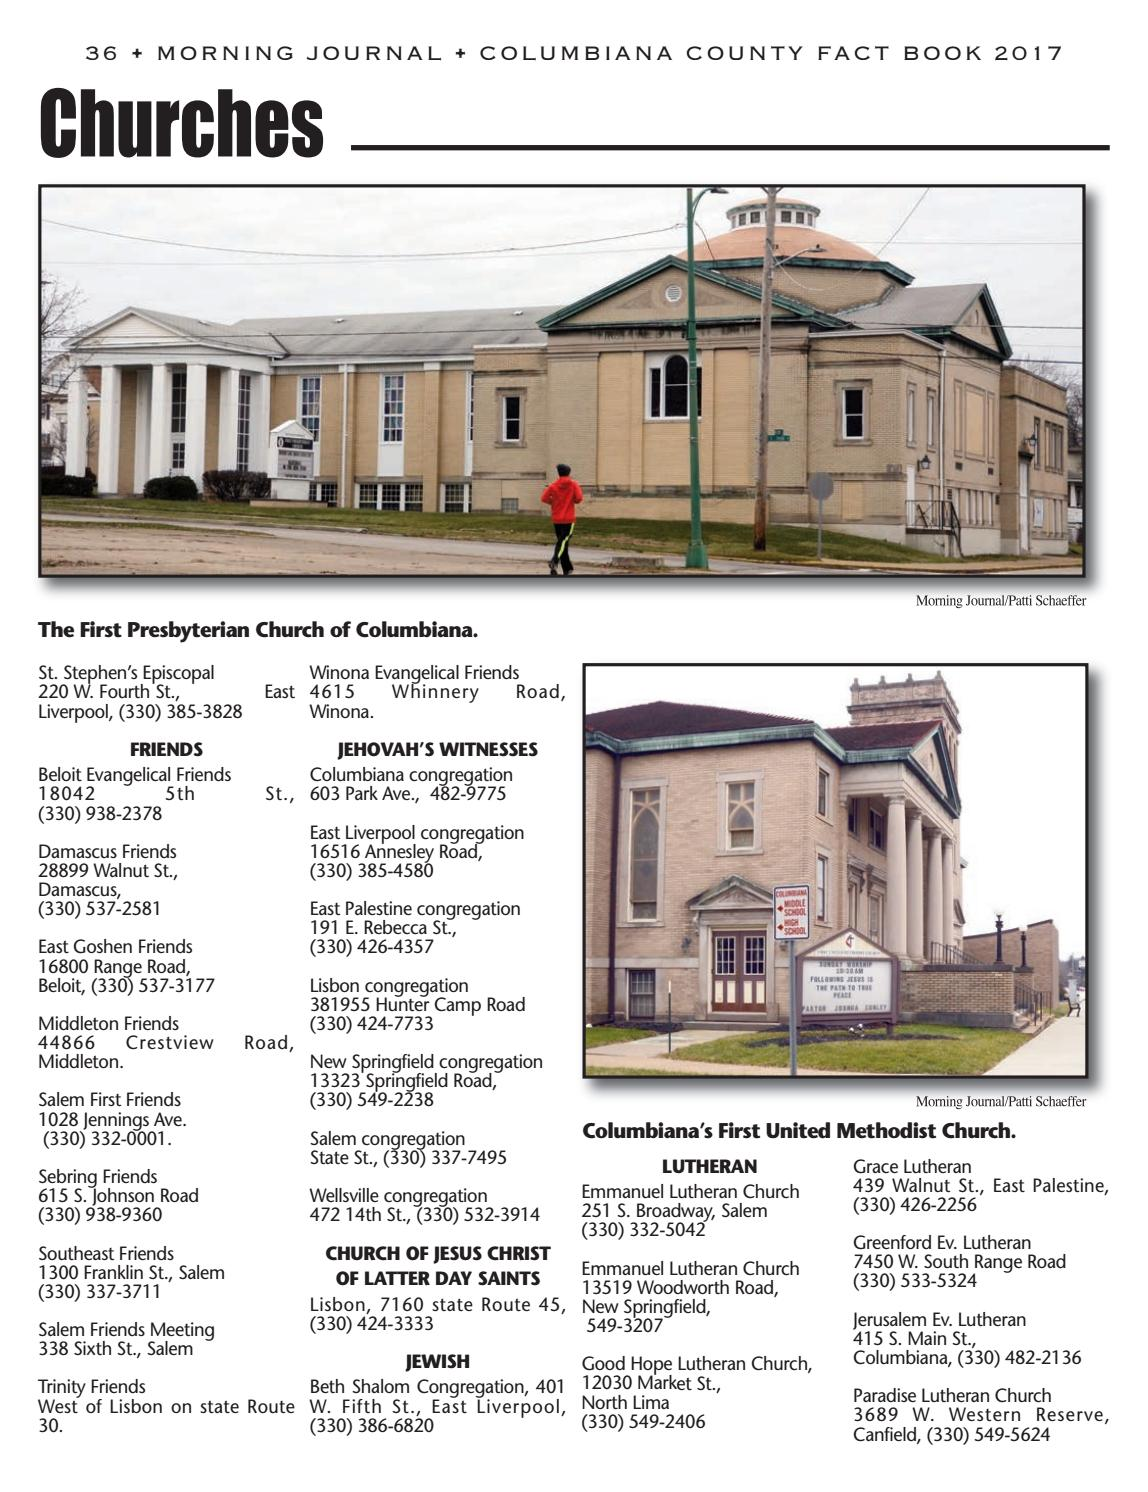 Morning Journal - Columbiana County Fact Book 2017 by Morning